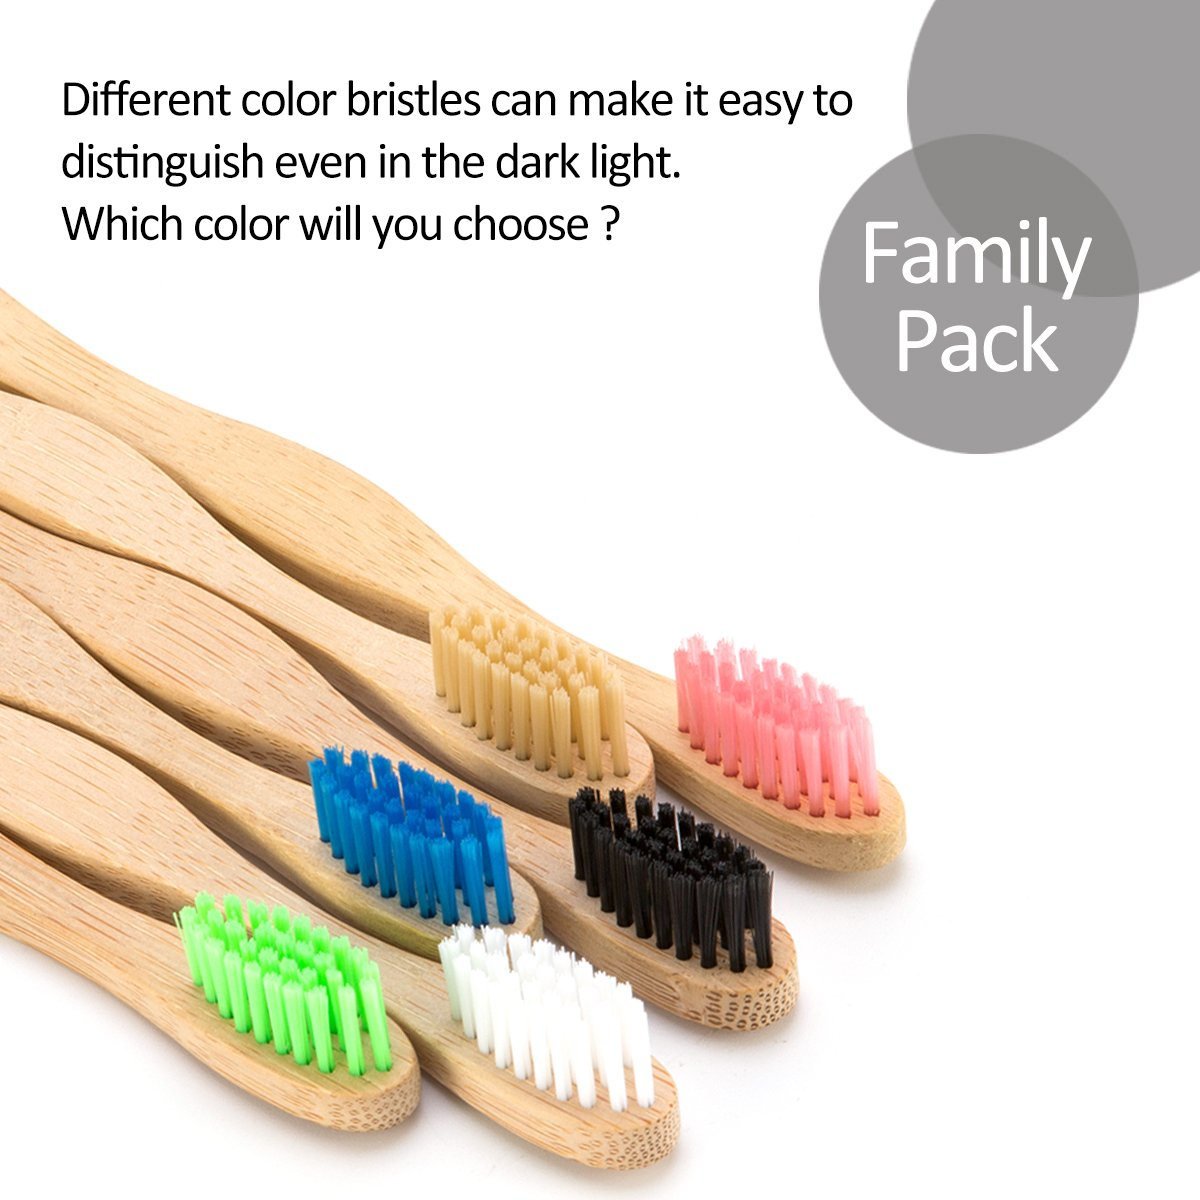 6 Colors Natural Bamboo Toothbrush + a Bamboo Toothbrush Case for Travel, Biodegradable Eco-Friendly Toothbrush with BPA Free Nylon Bristles for Adult by Homtable (Image #2)